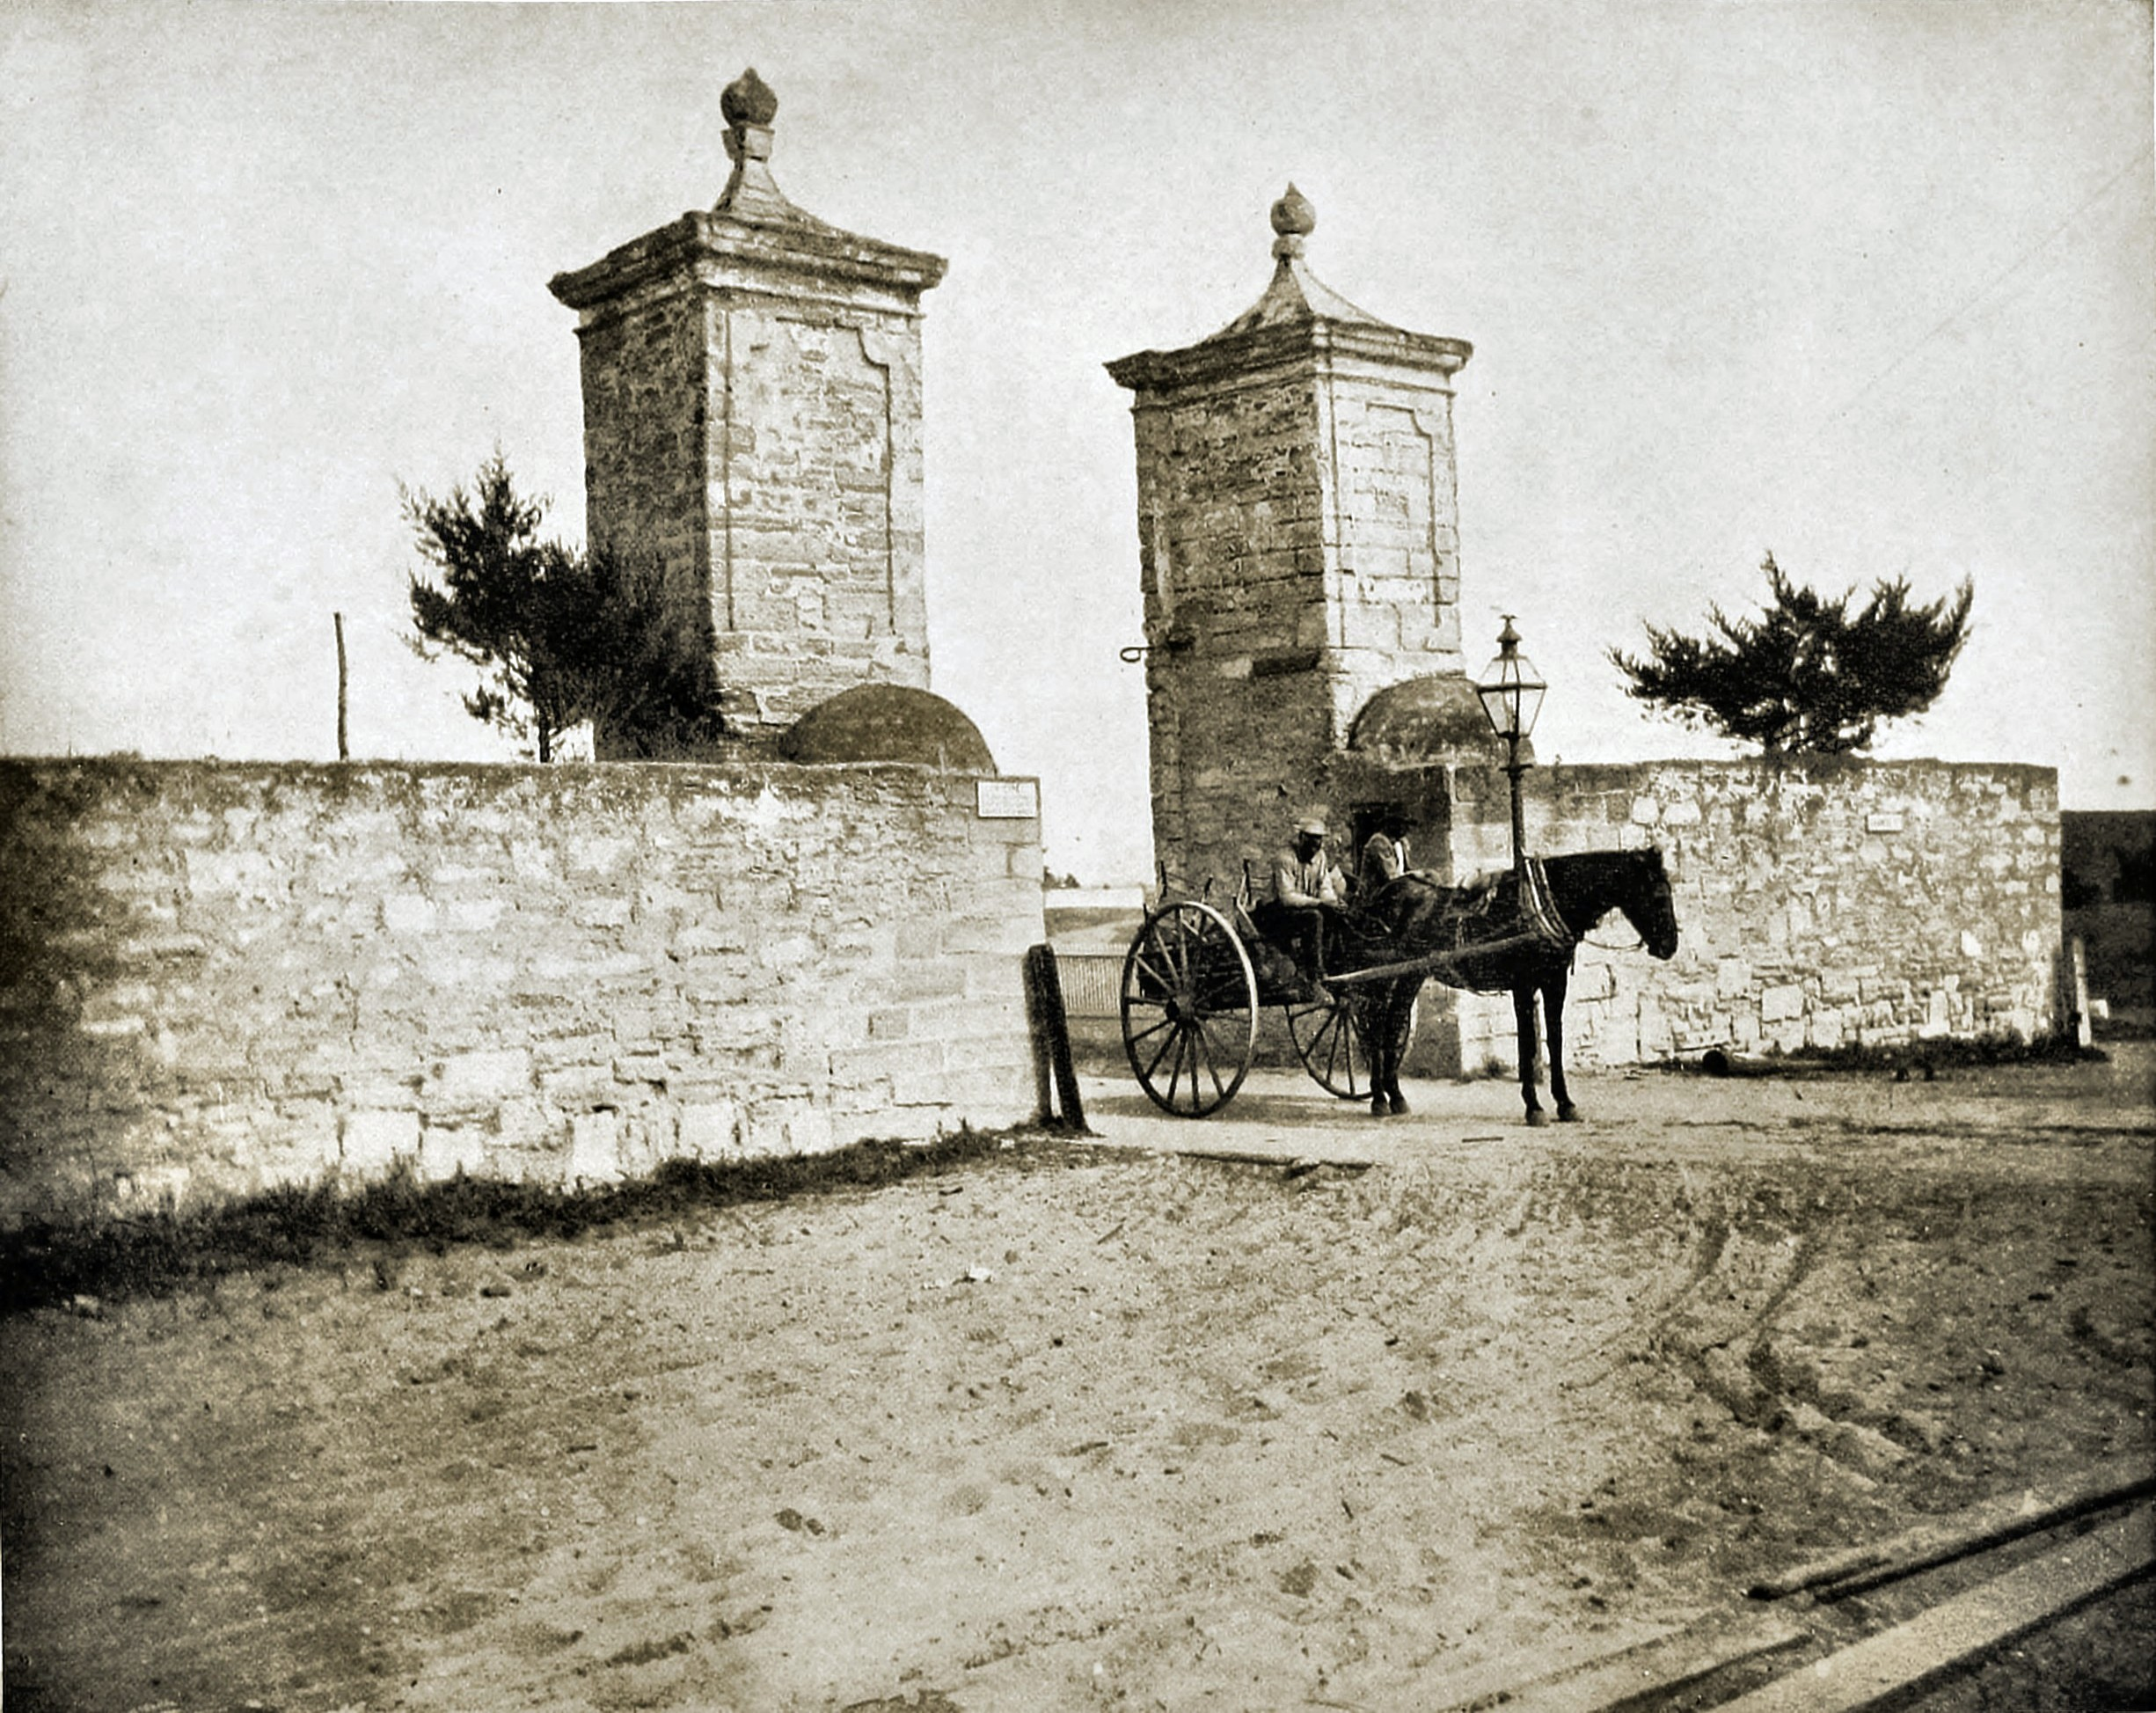 The Old City Gate, St. Augustine, Florida, USA about 1892